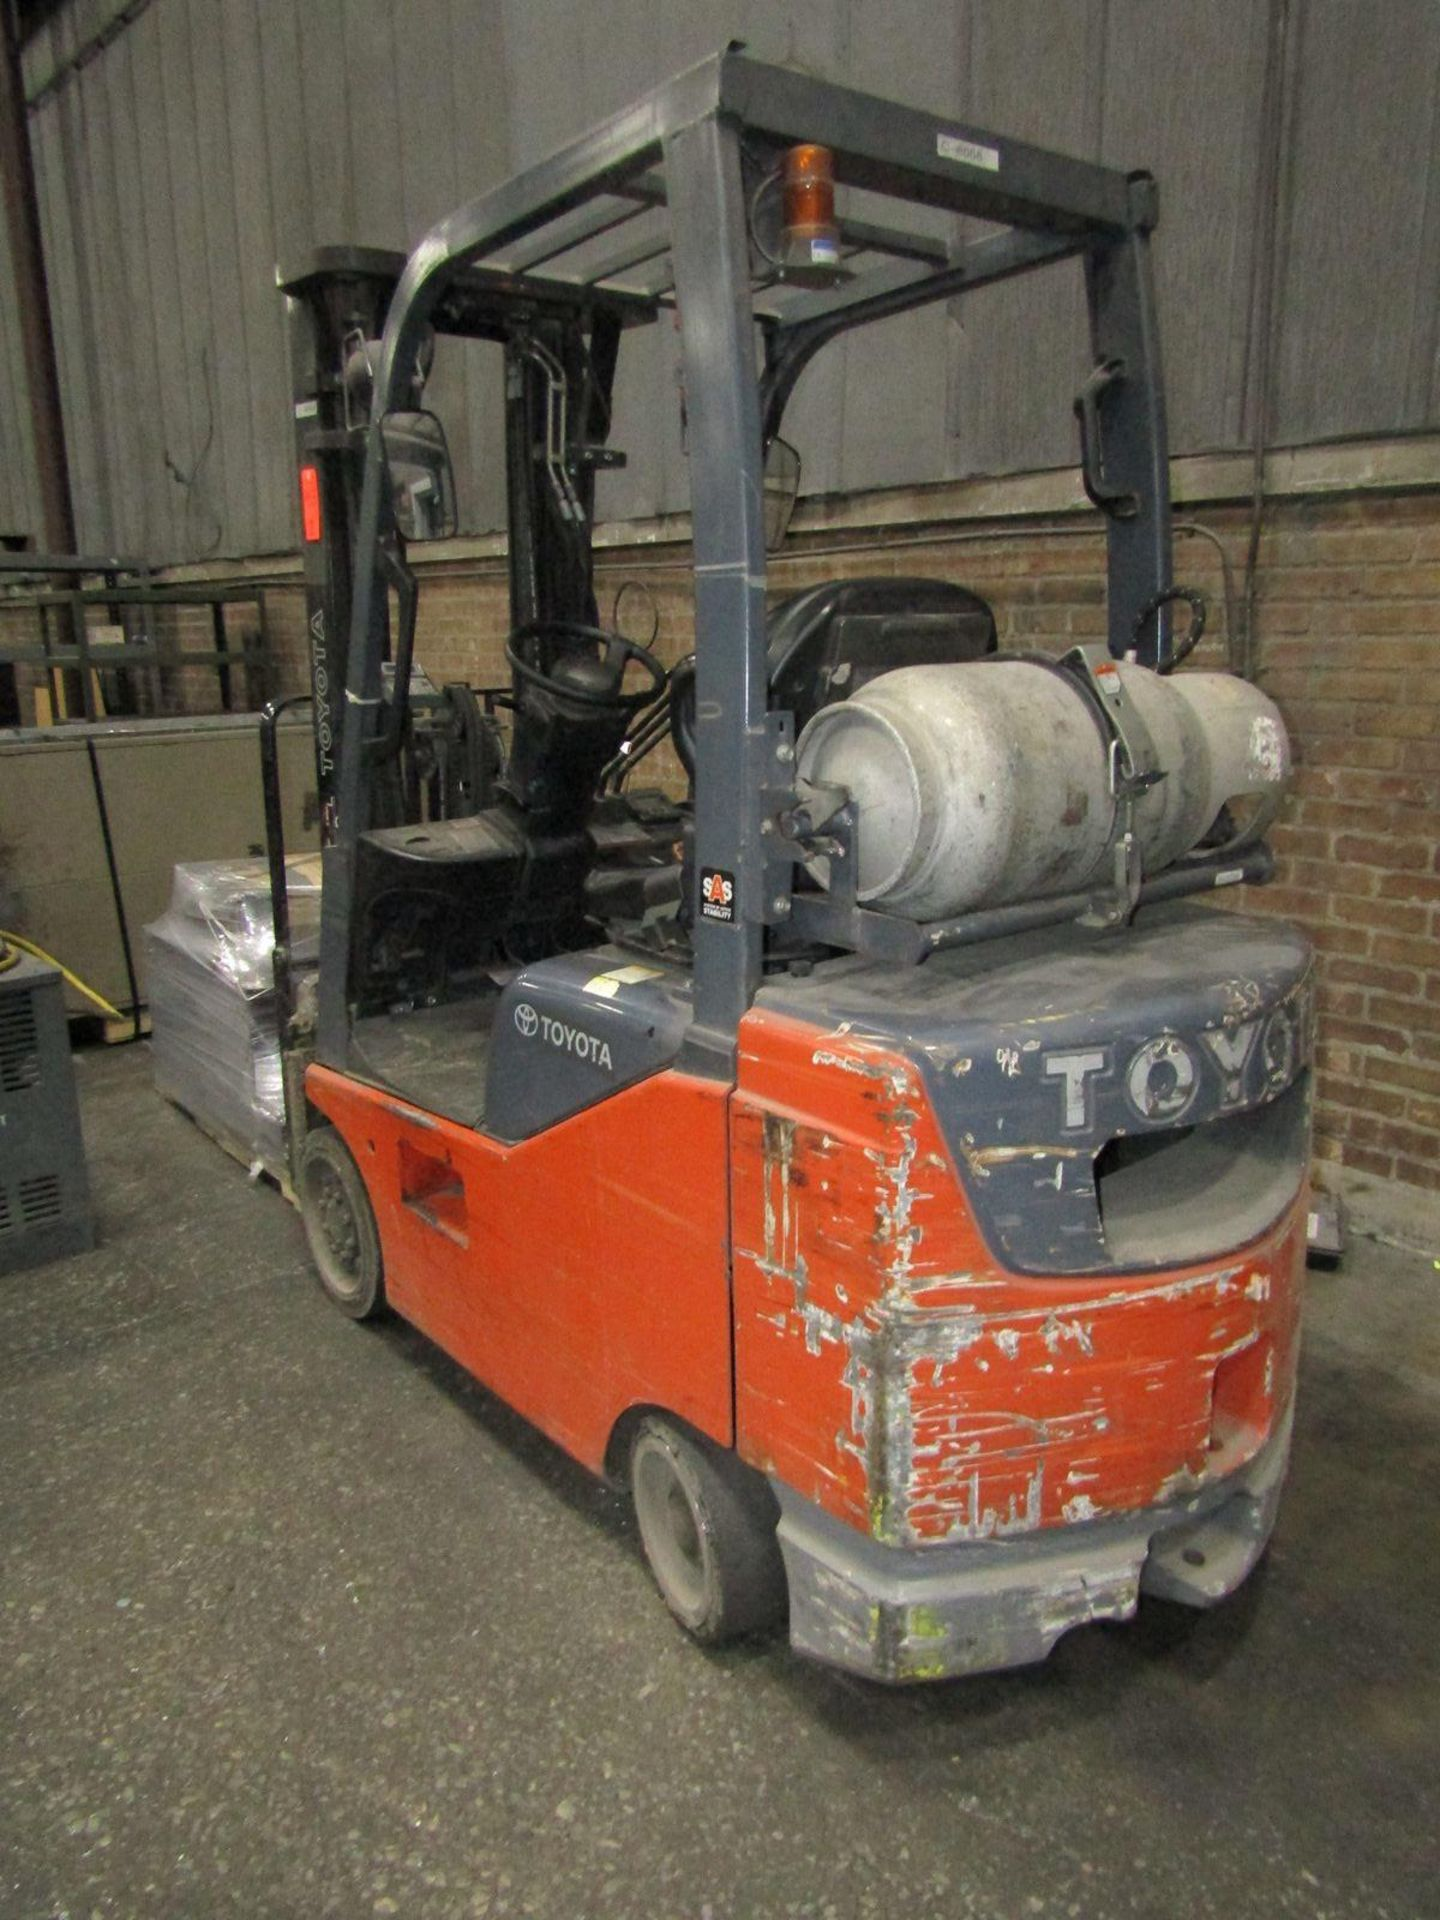 Toyota 5,000 lb. Cap. (approx.) Model 8FGCSU20 LP Fork Lift Truck, S/N: 20712; with 3-Stage Mast, - Image 2 of 8